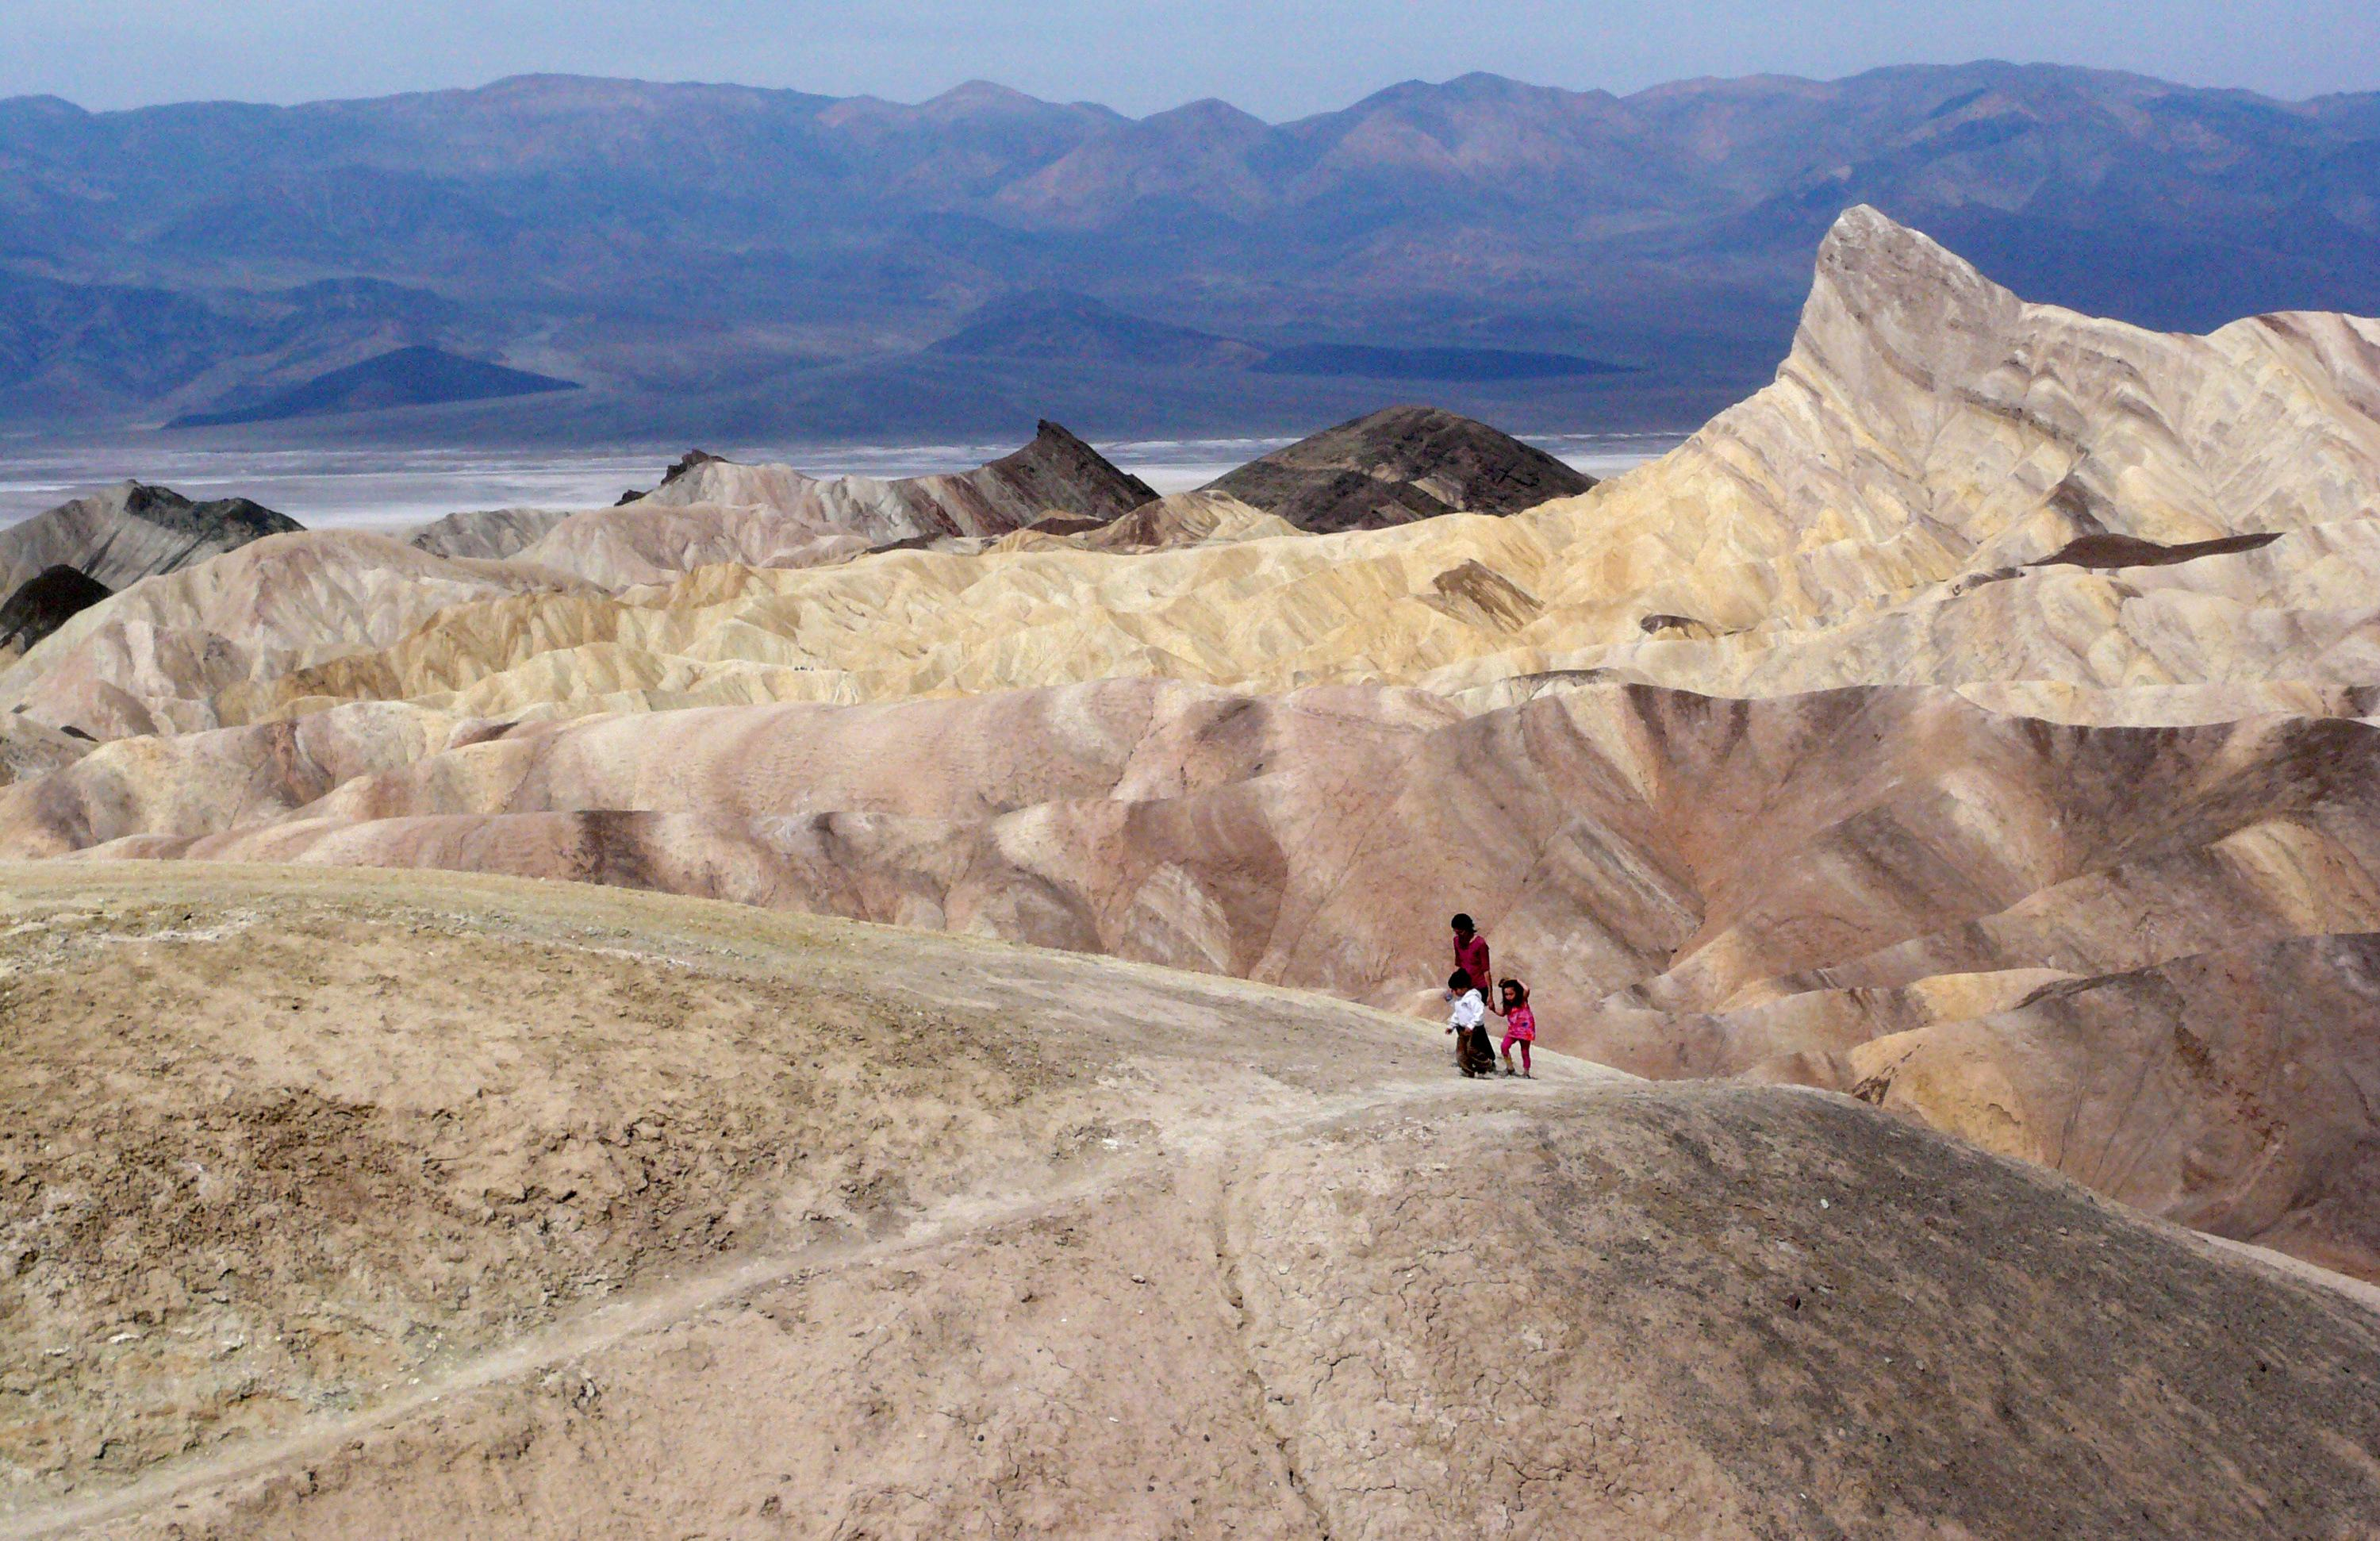 FILE - In this April 11,2010 file photo, tourists walk along a ridge at Death Valley National Park, Calif.    (AP Photo/Brian Melley, File)